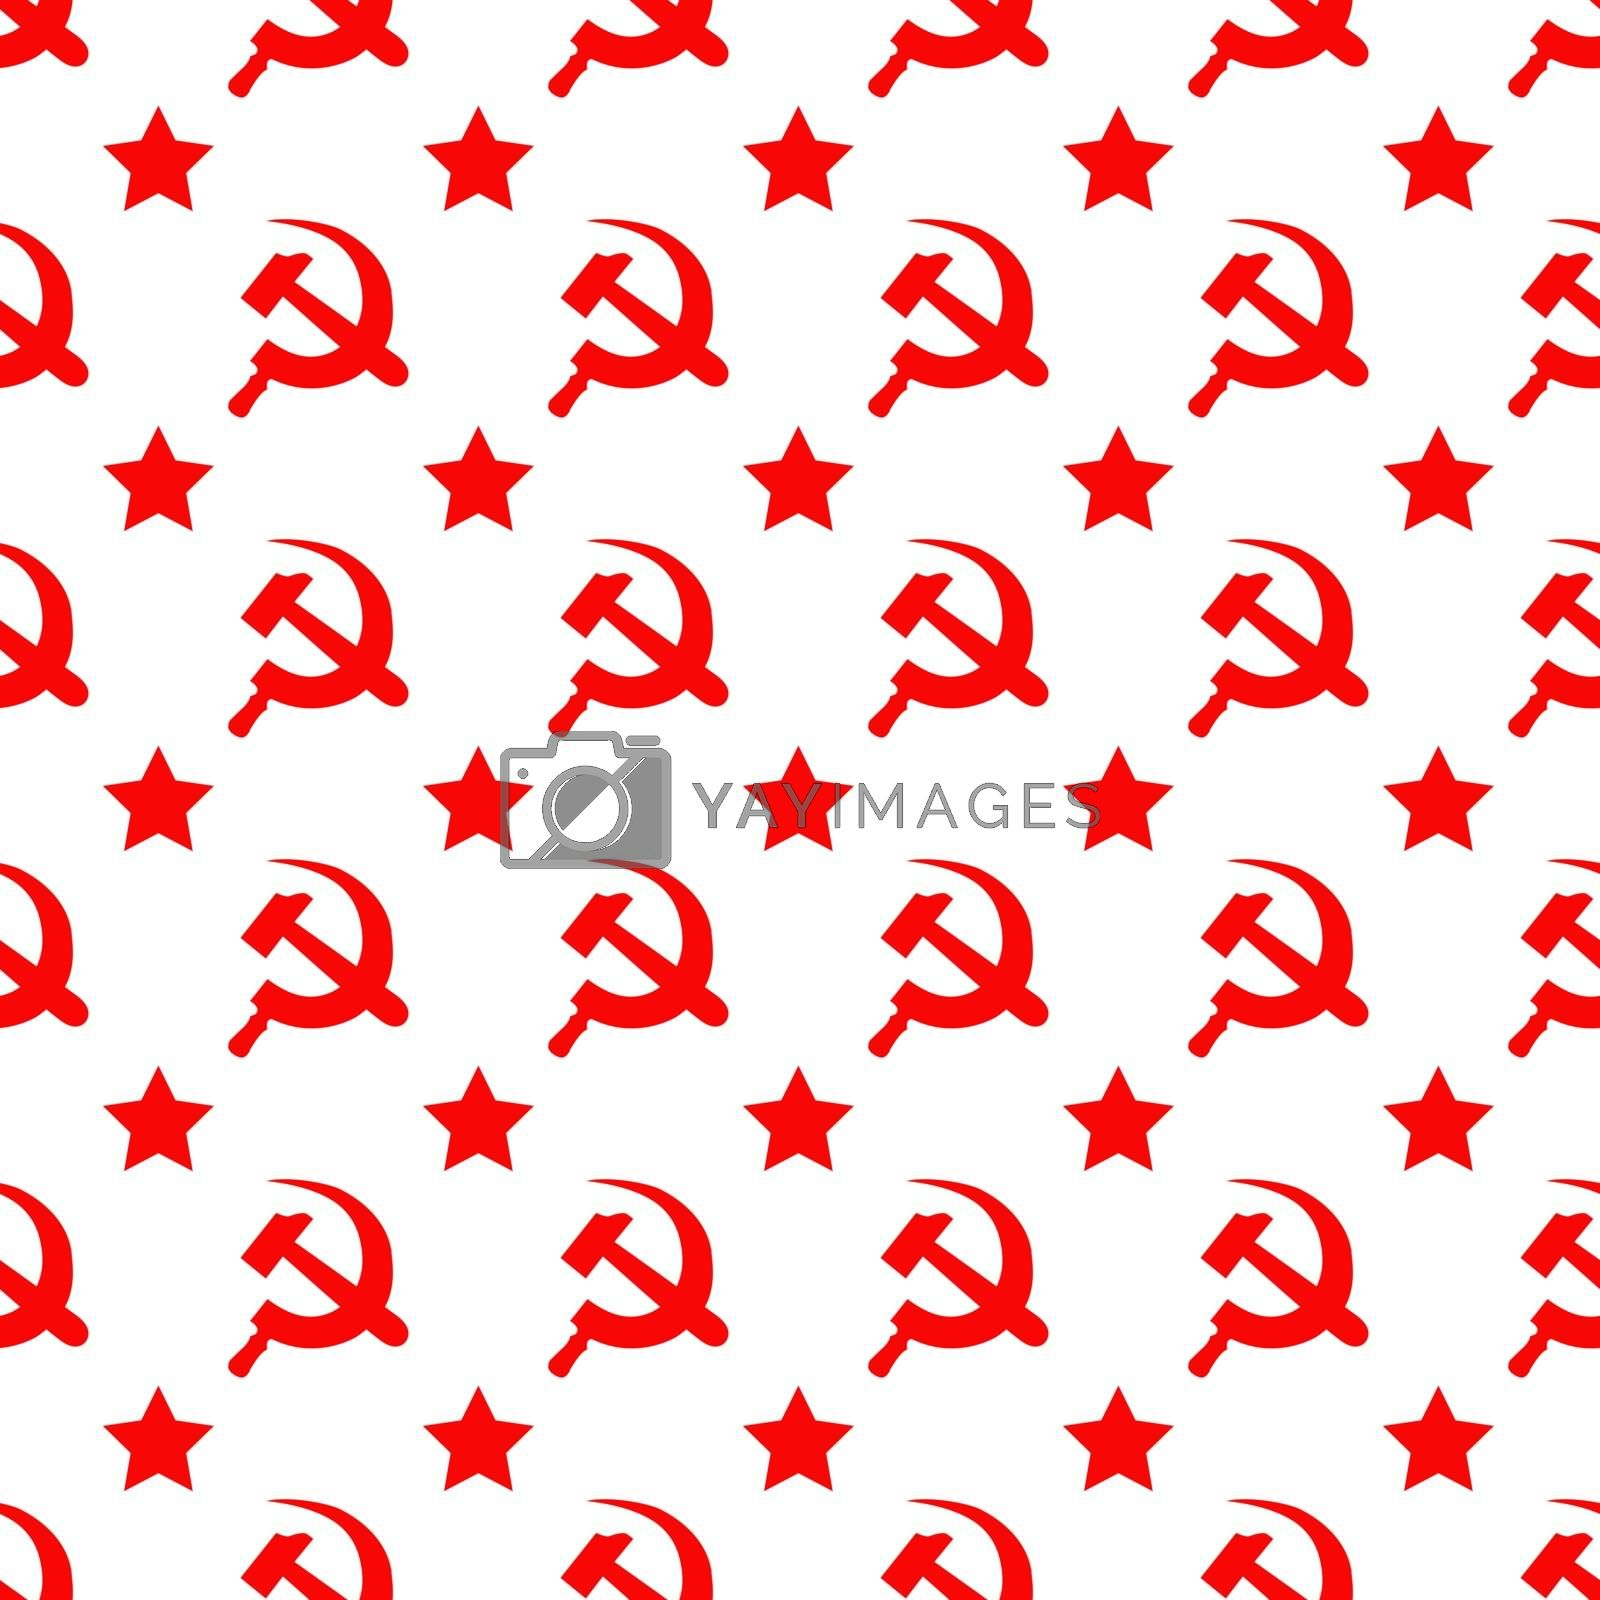 Abstract seamless pattern with red star, hammer and sickle